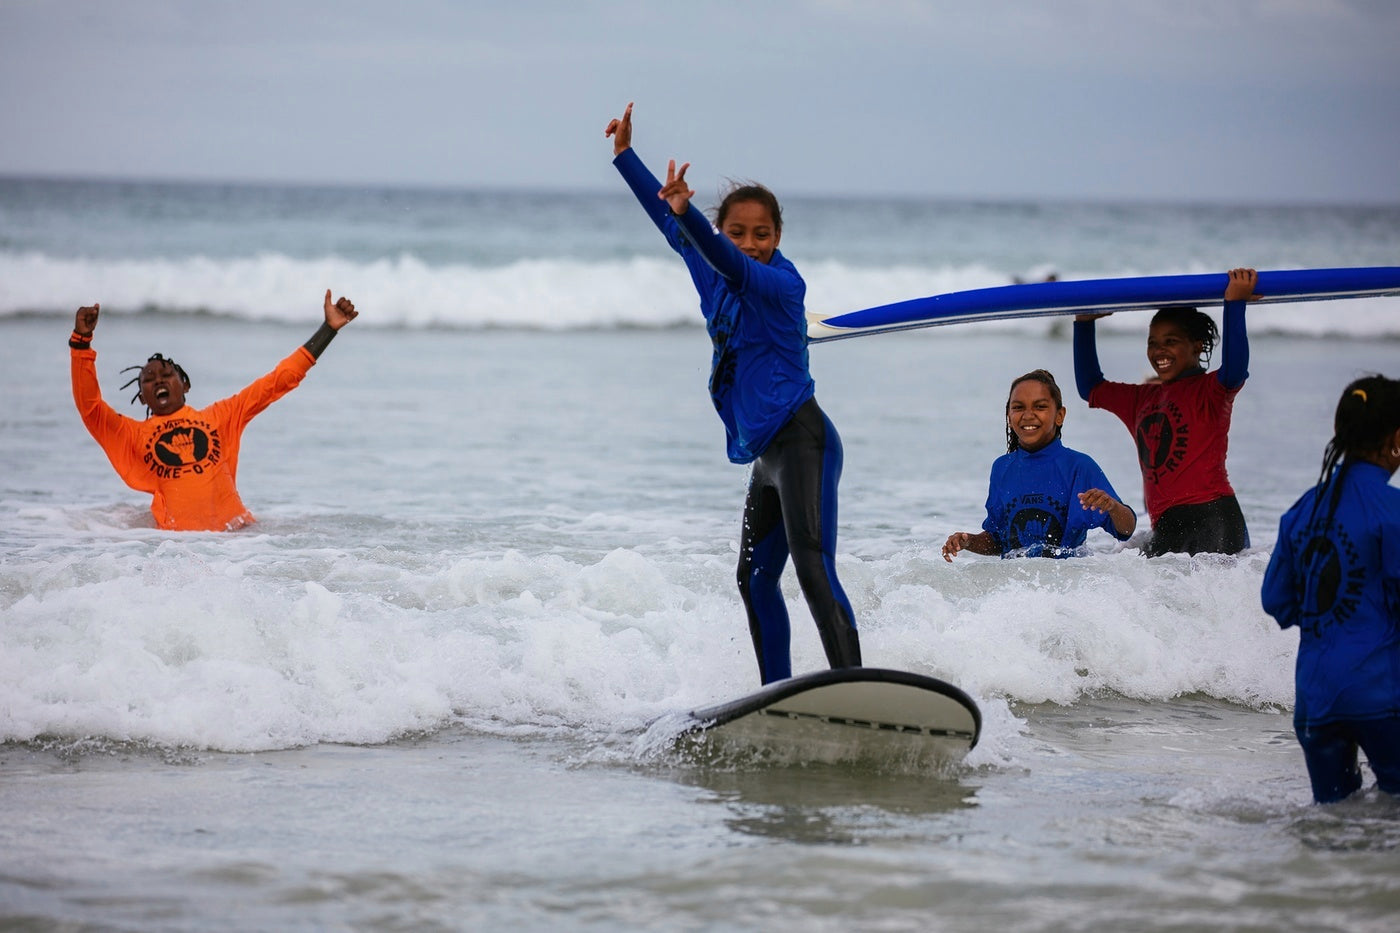 A young W4C participant is cheered onto a wave by the instructor